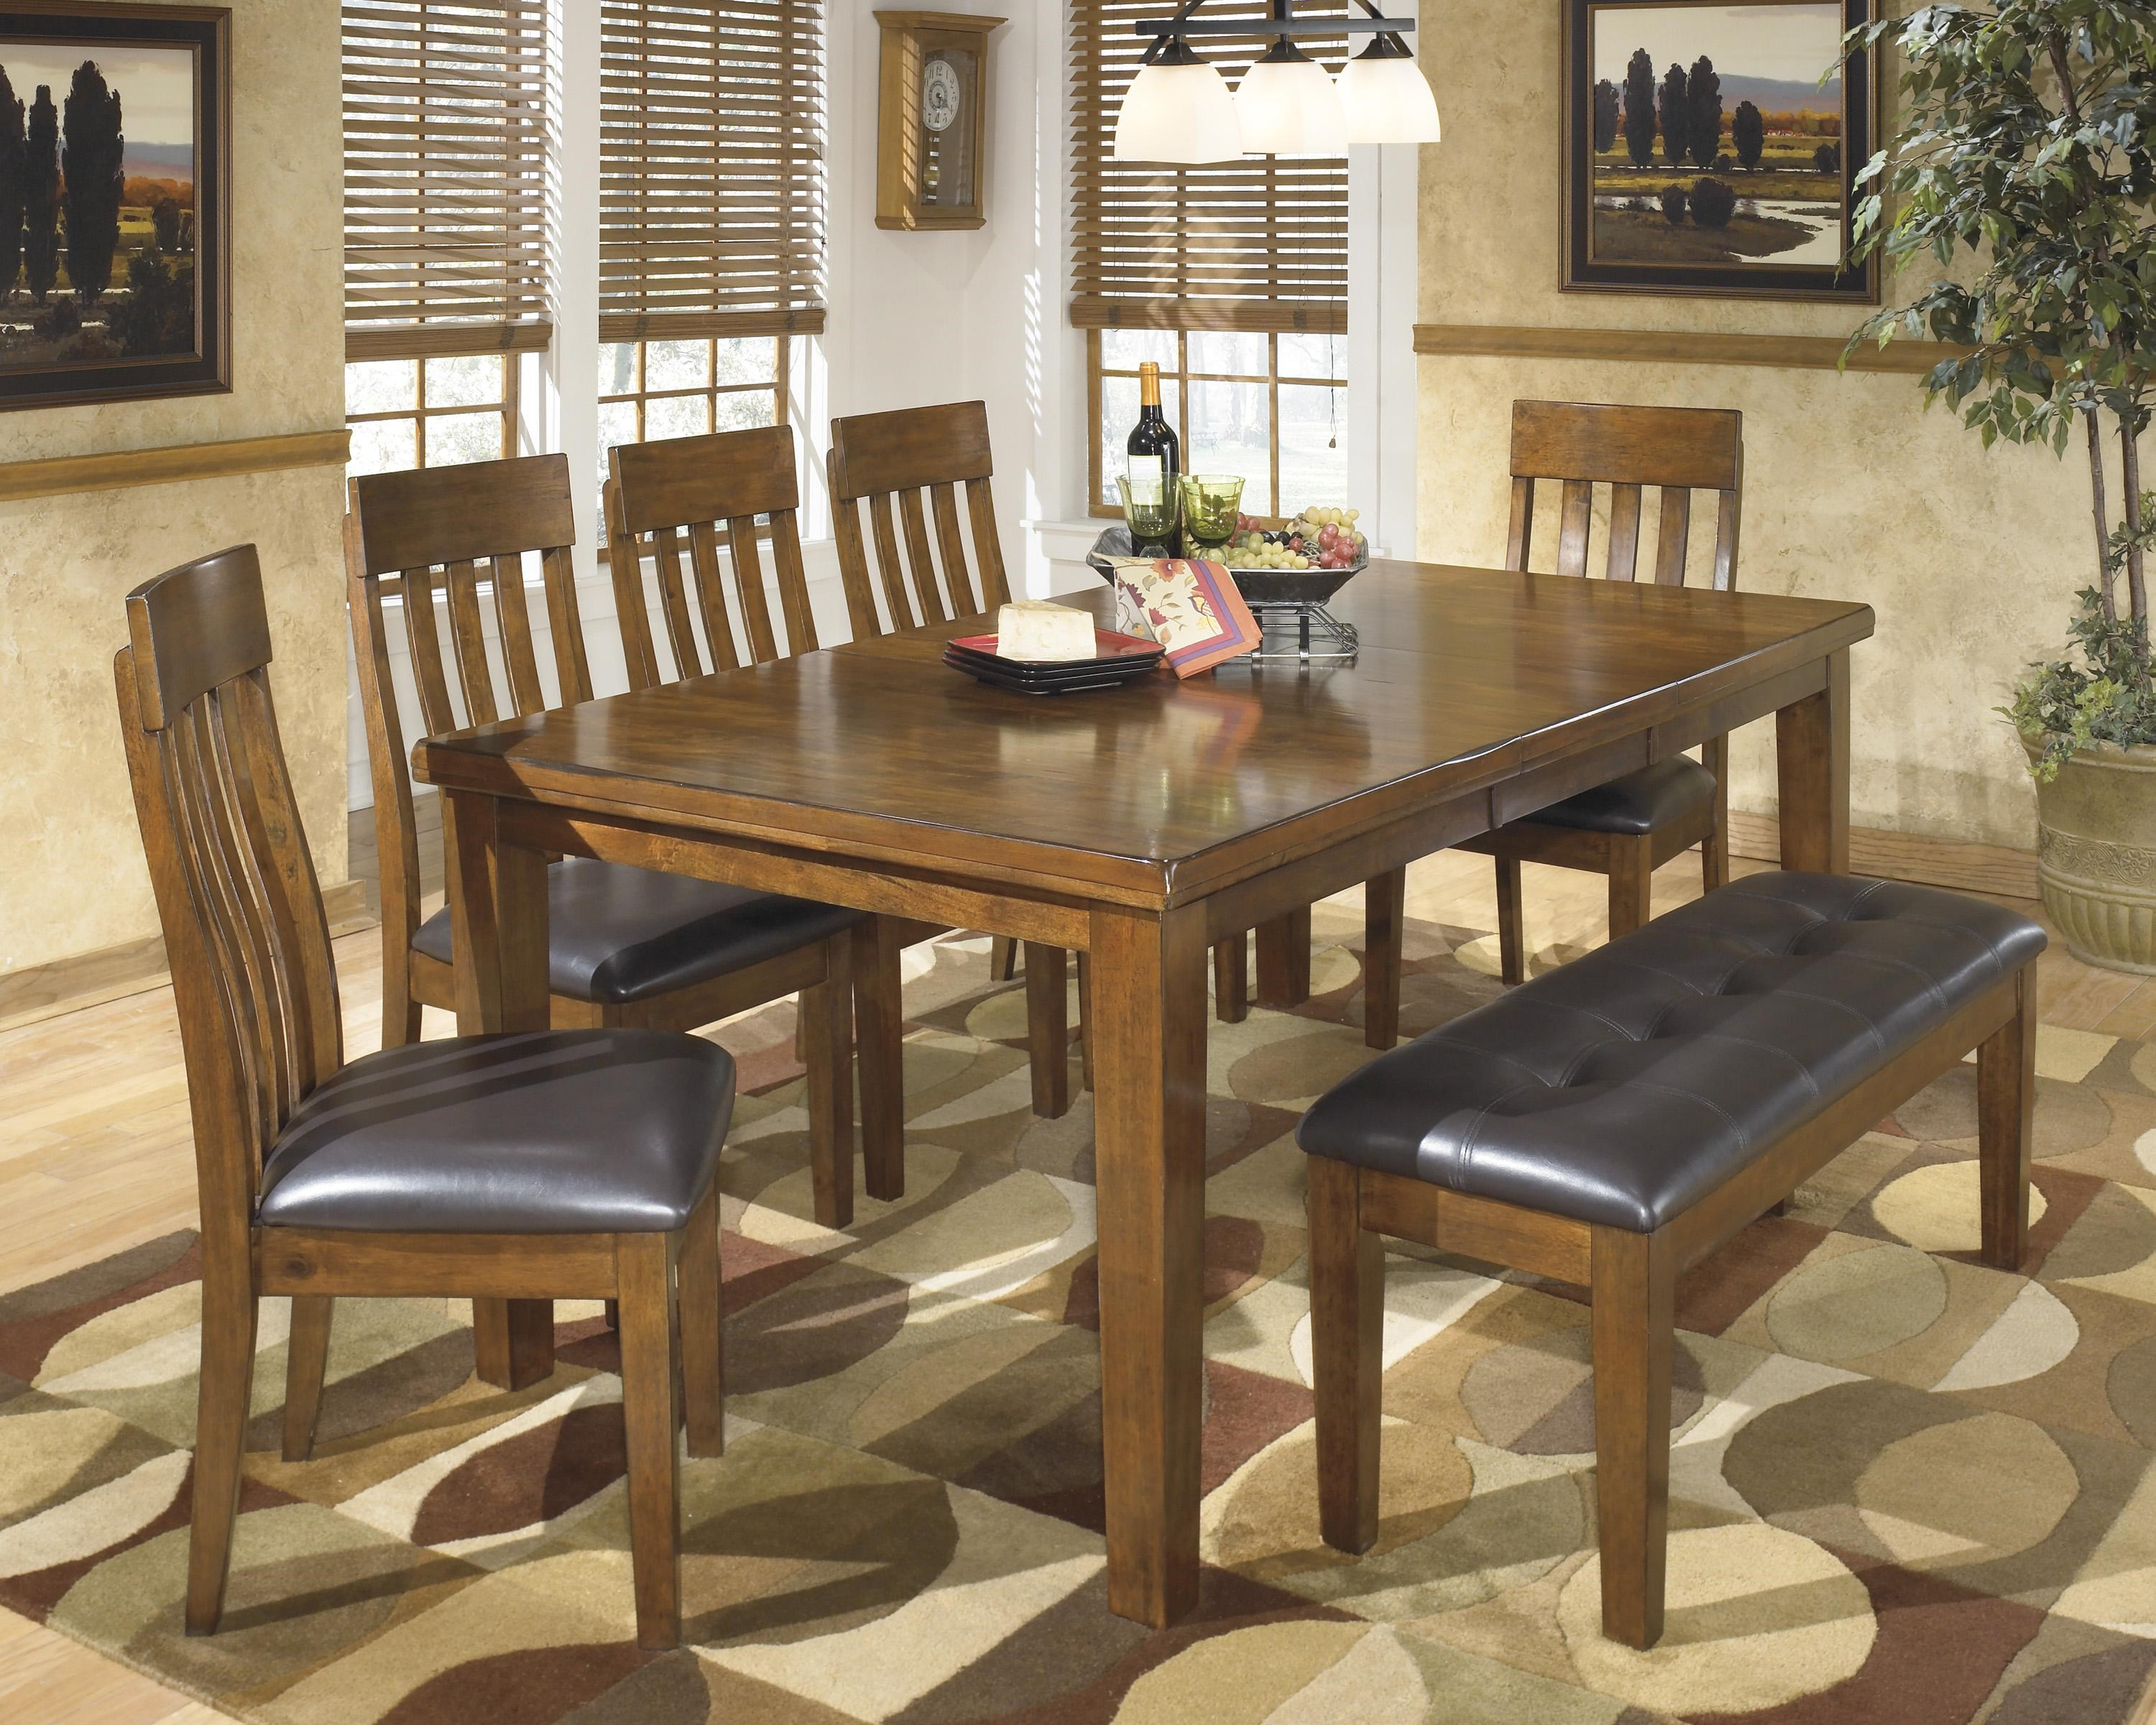 Dining Room Sets Under 500 00 Of 7 Piece Dining Set With Bench Charming 7 Piece Dining Room